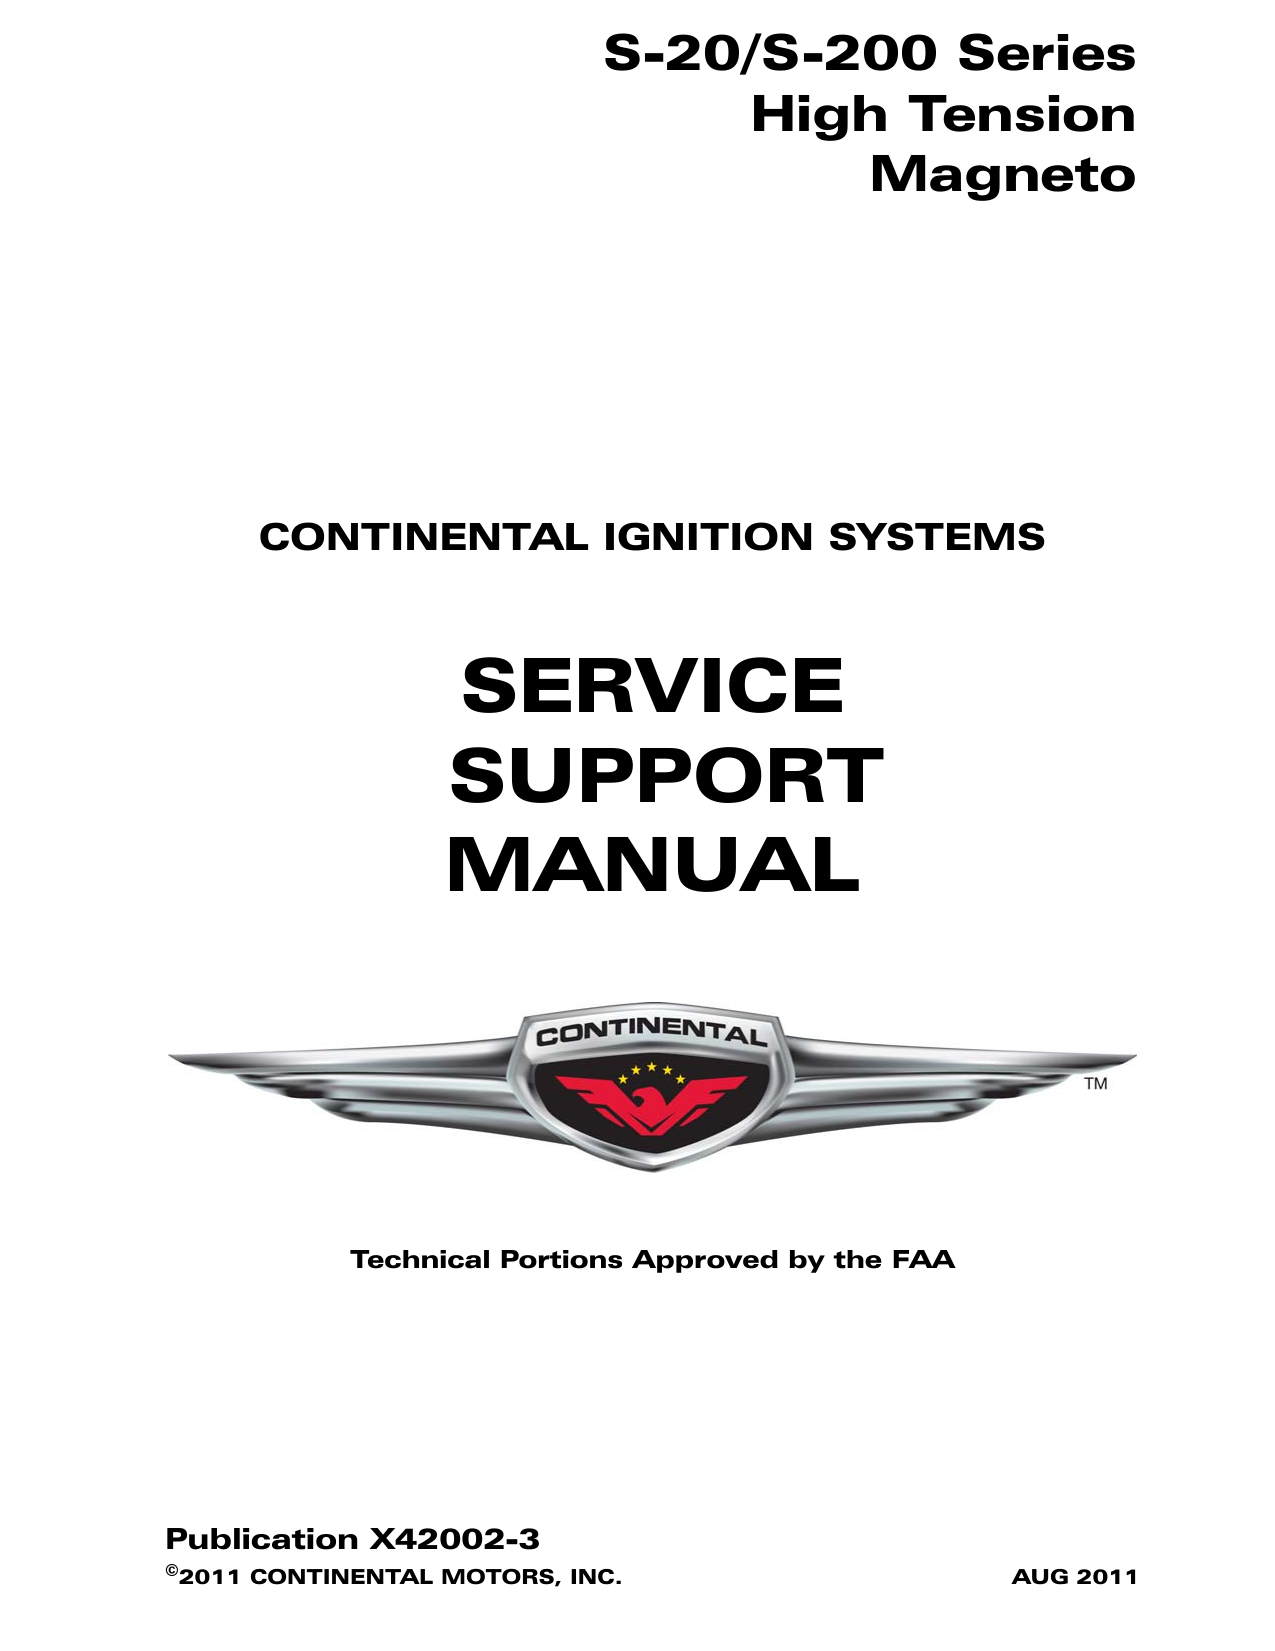 Service Support Manual on